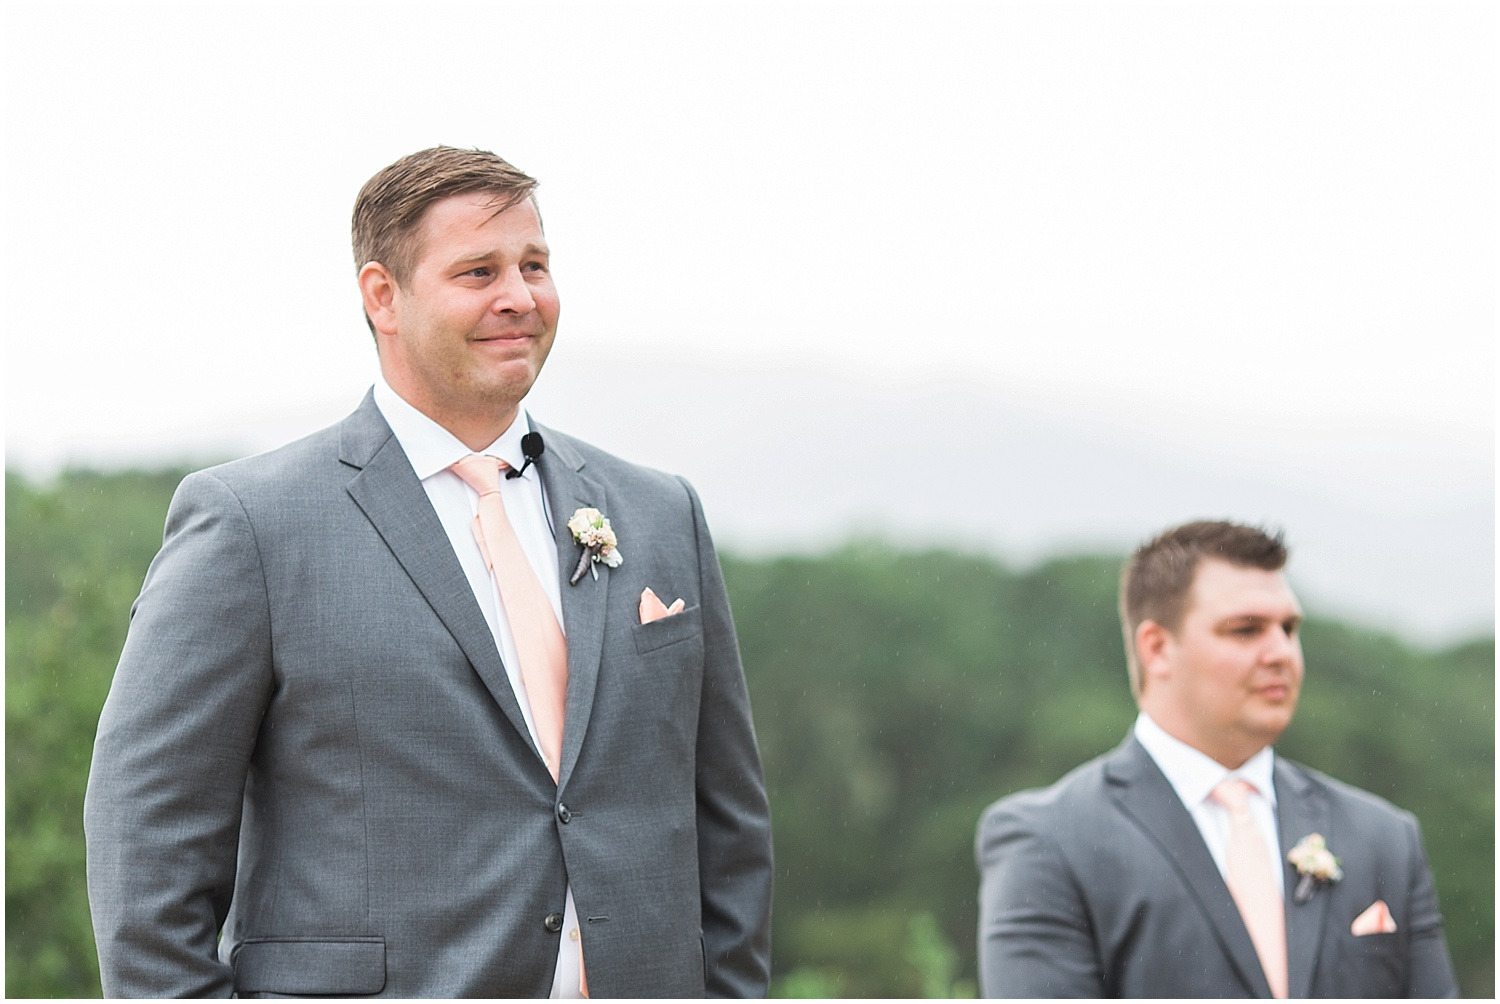 Carmel_holman_ranch_wedding_photographer-020.jpg